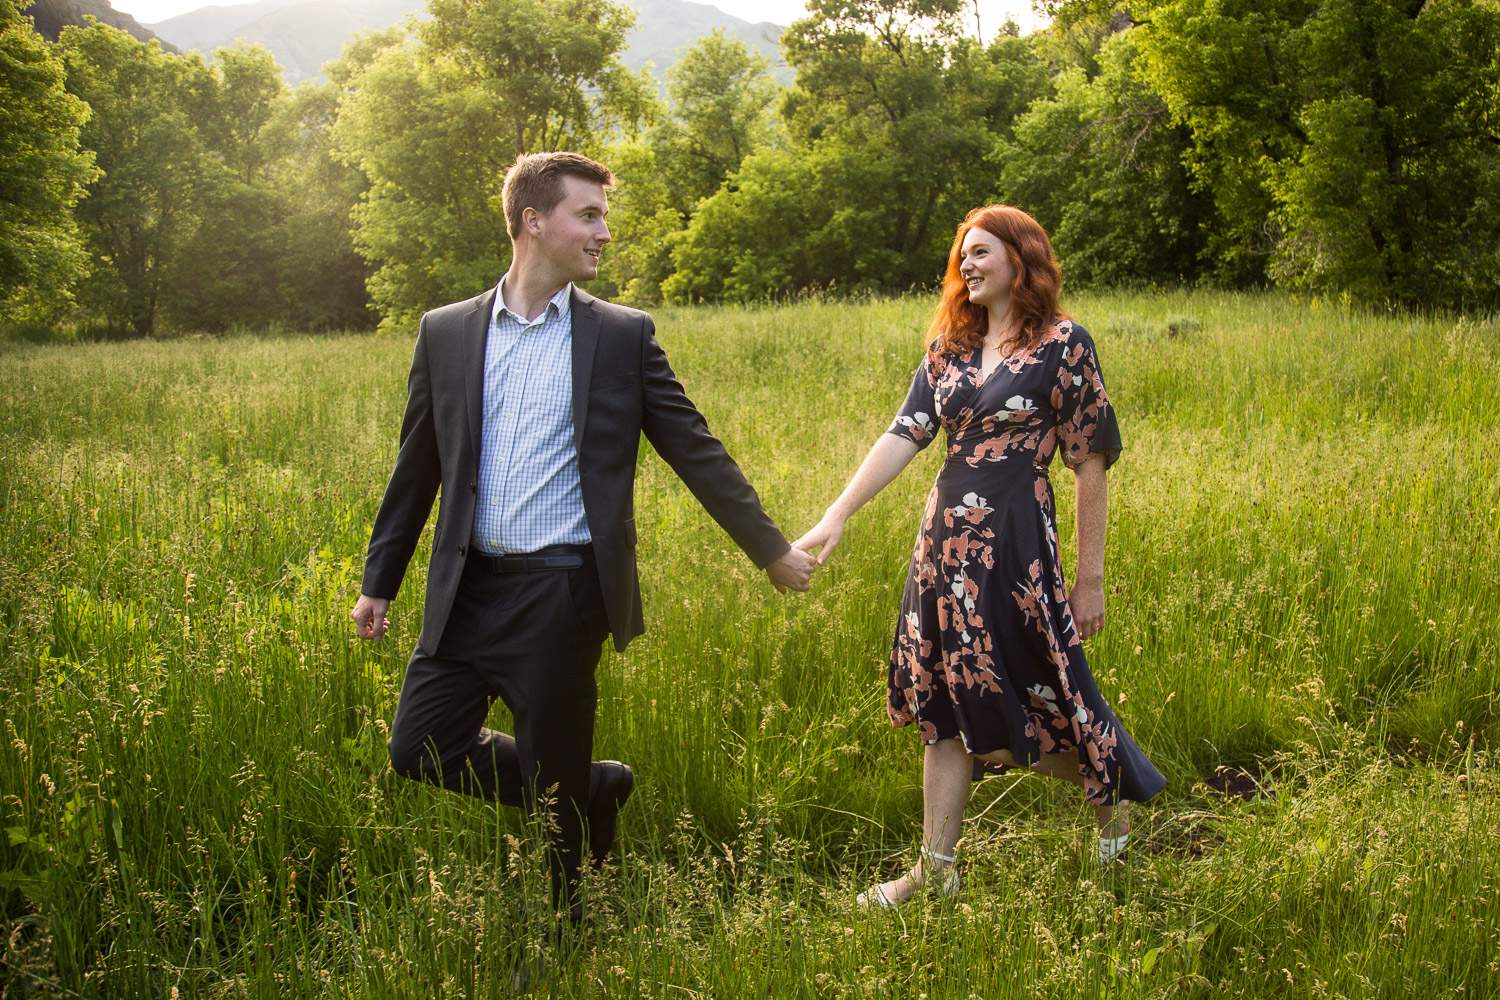 provo-engagement-photography-5056.jpg